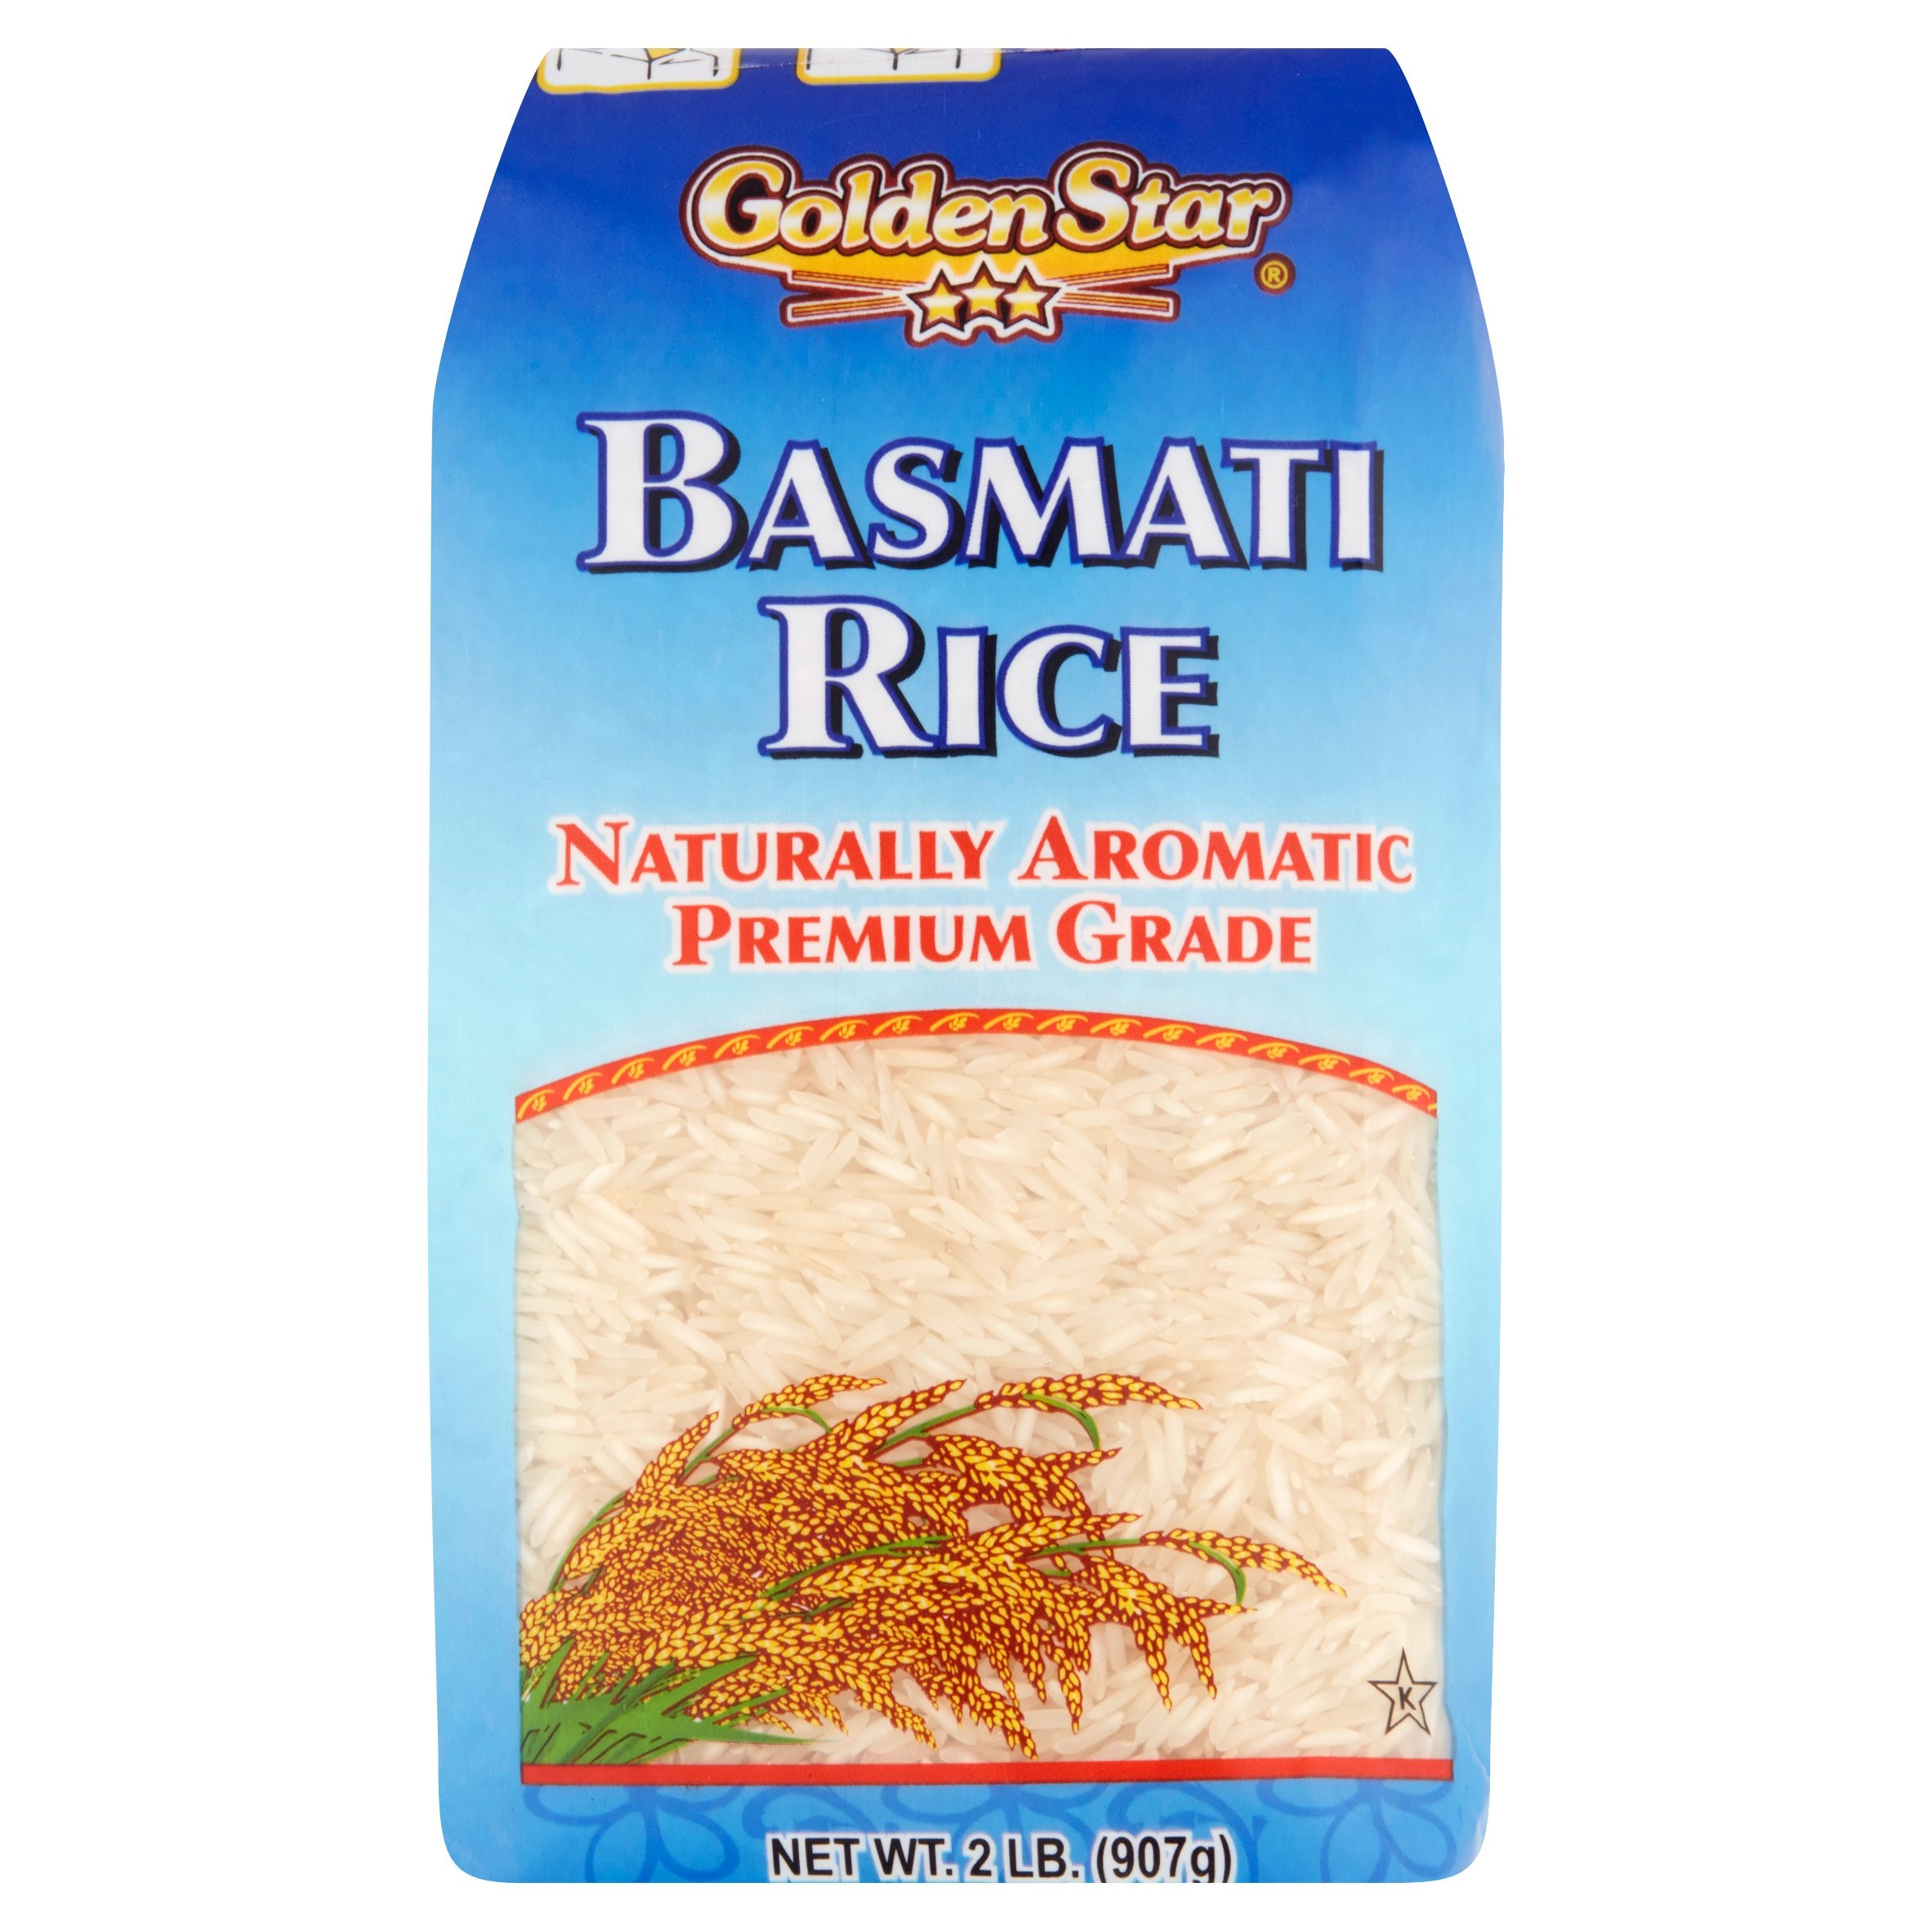 Golden Star Naturally Aromatic Premium Grade Basmati Rice, 2 lb